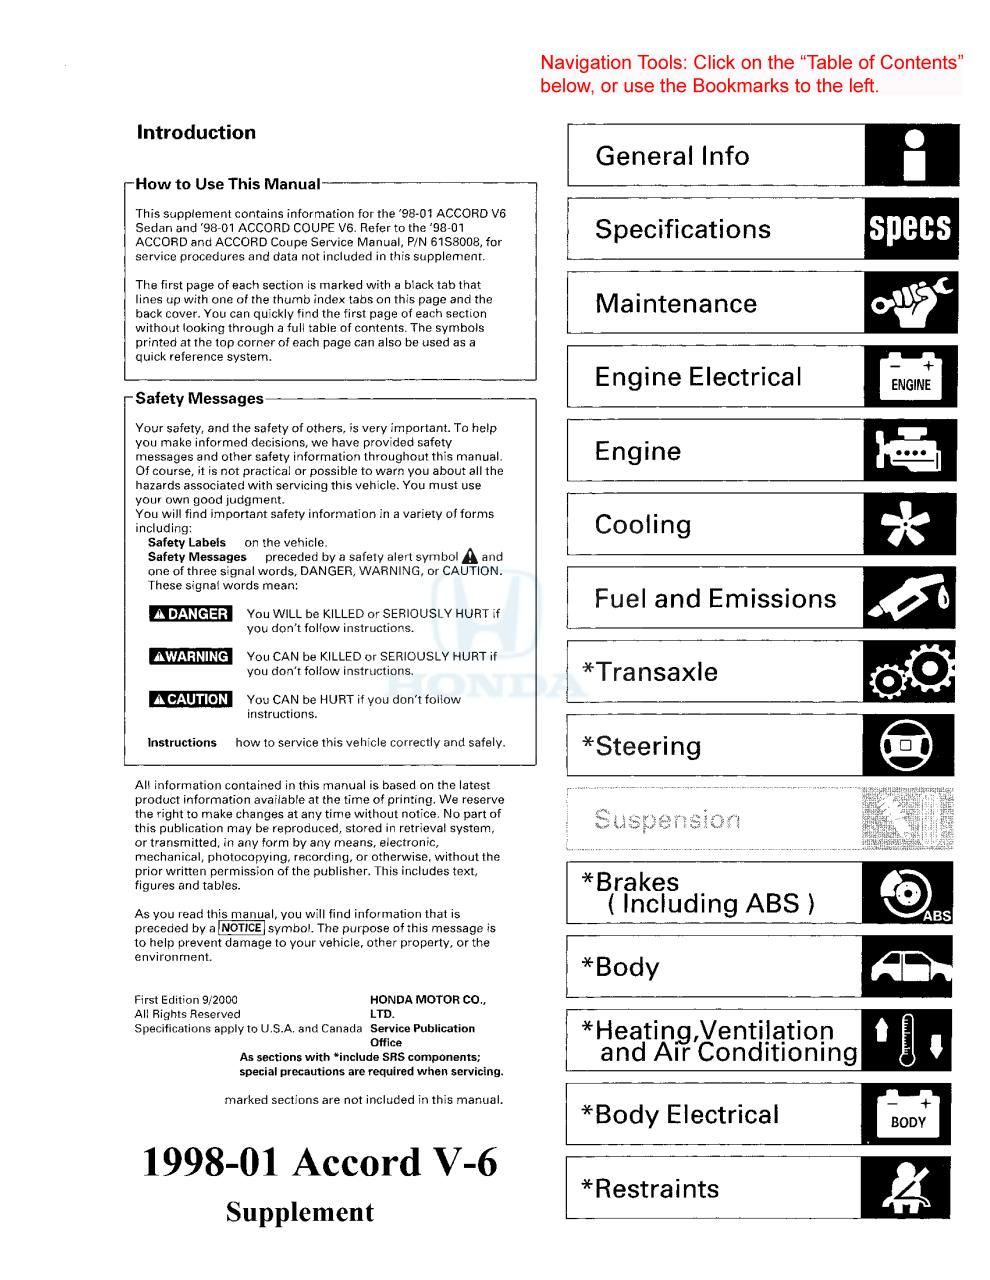 Honda Accord V6 1998 2001 Sm Supp Fichier Pdf On All Engines Except Vtec The Belt Adjuster Arm Must Be Locked In Supppdf Page 1 834